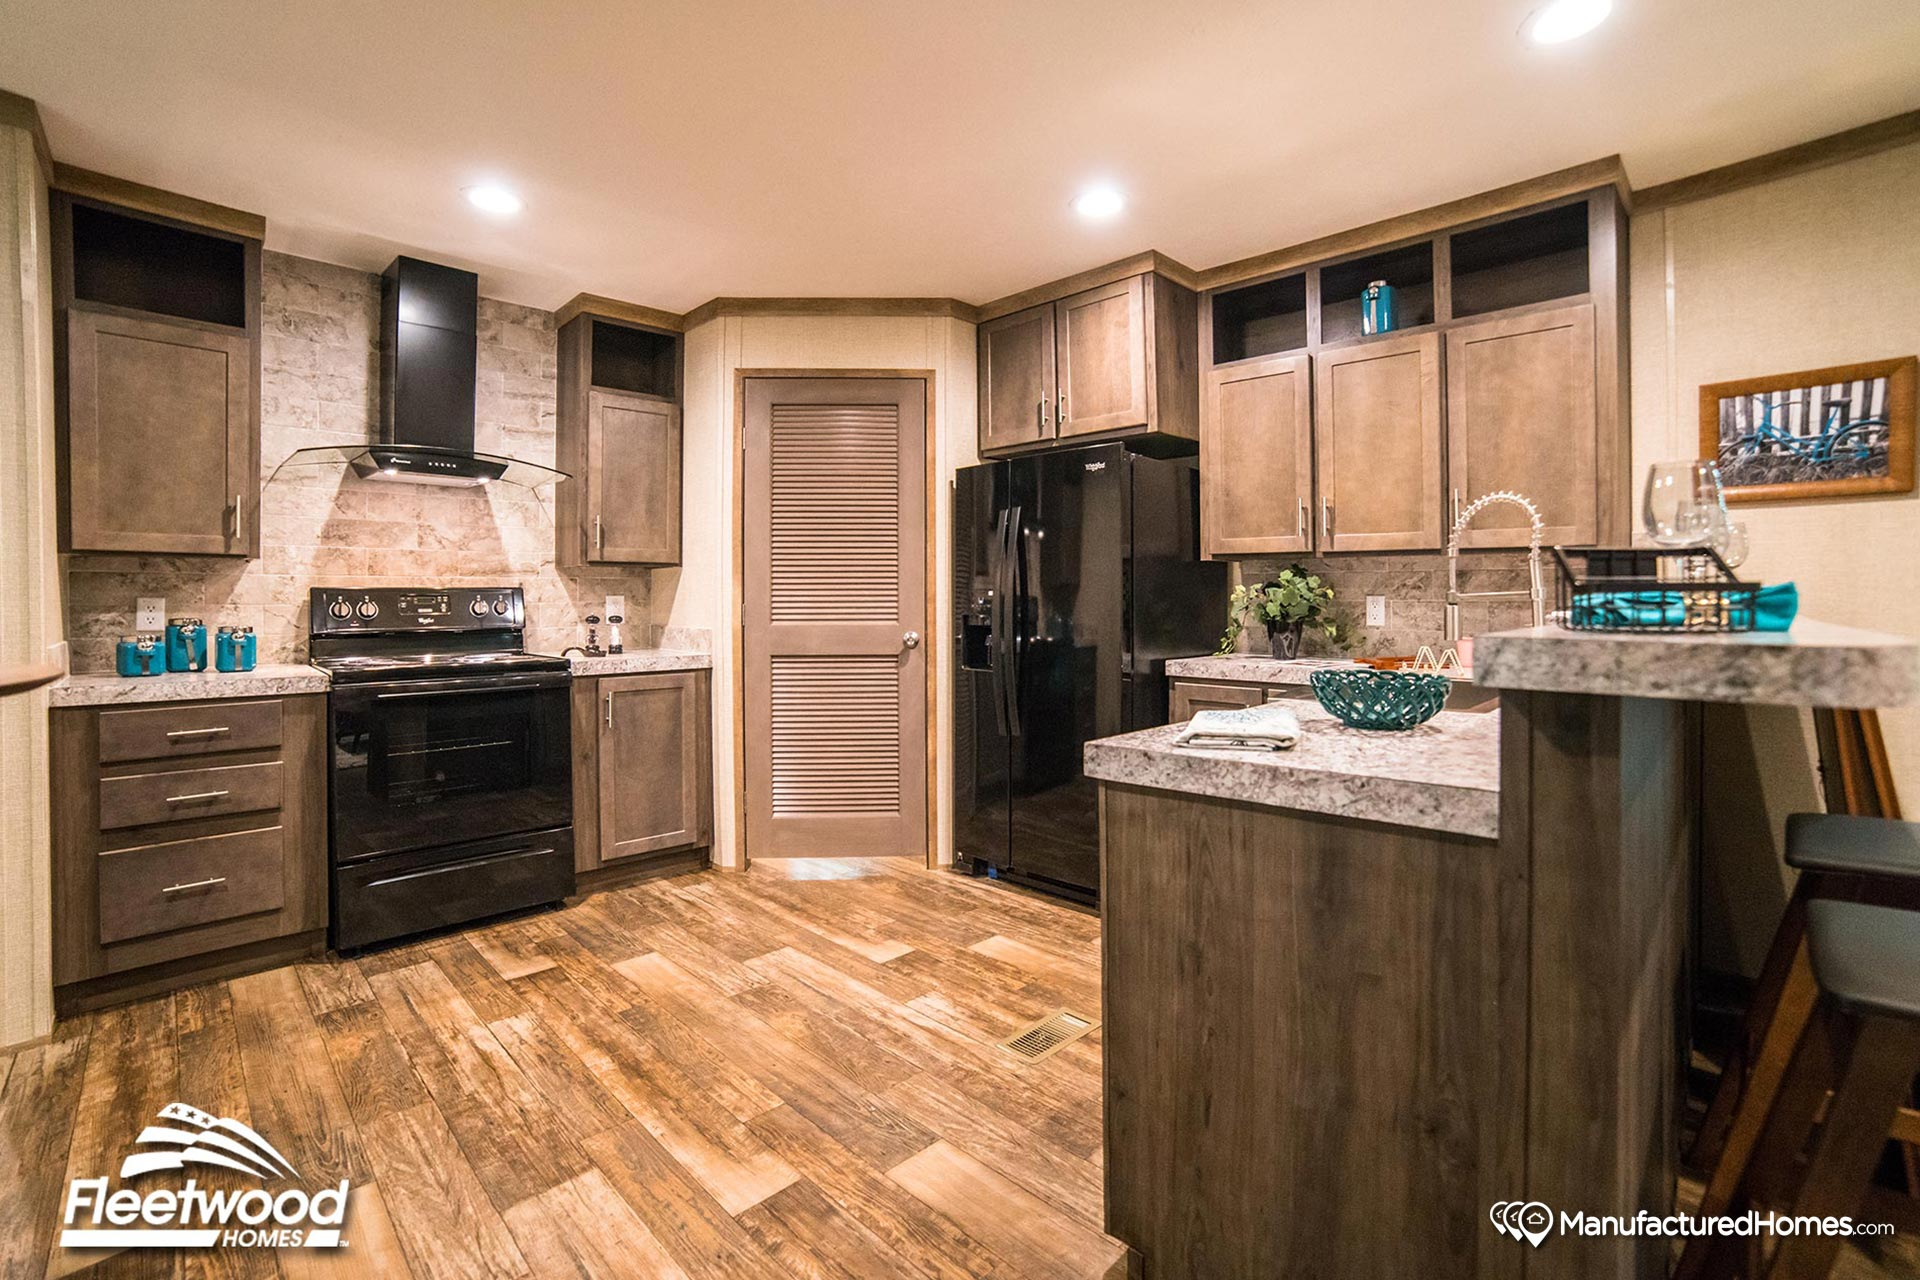 Day Star Homes In Sylacauga Al Manufactured Home Dealer